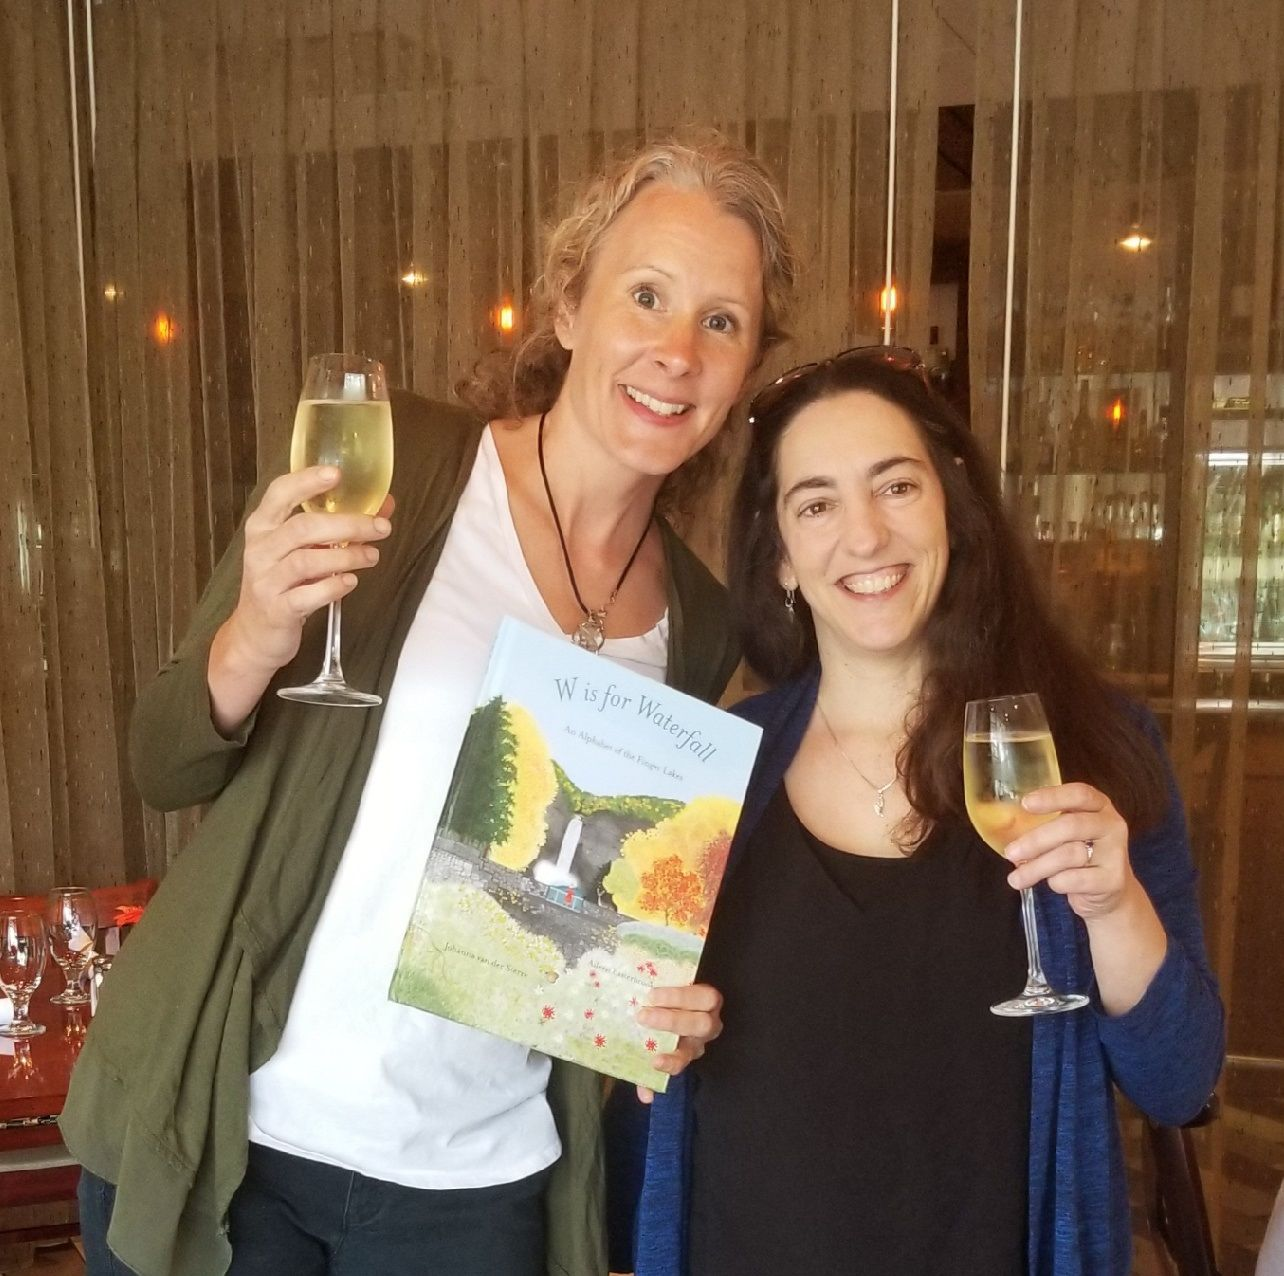 Johanna van der Sterre and Aileen Easterbrook celebrate publication of their local-interest picture book with a toast to all things Finger Lakes.